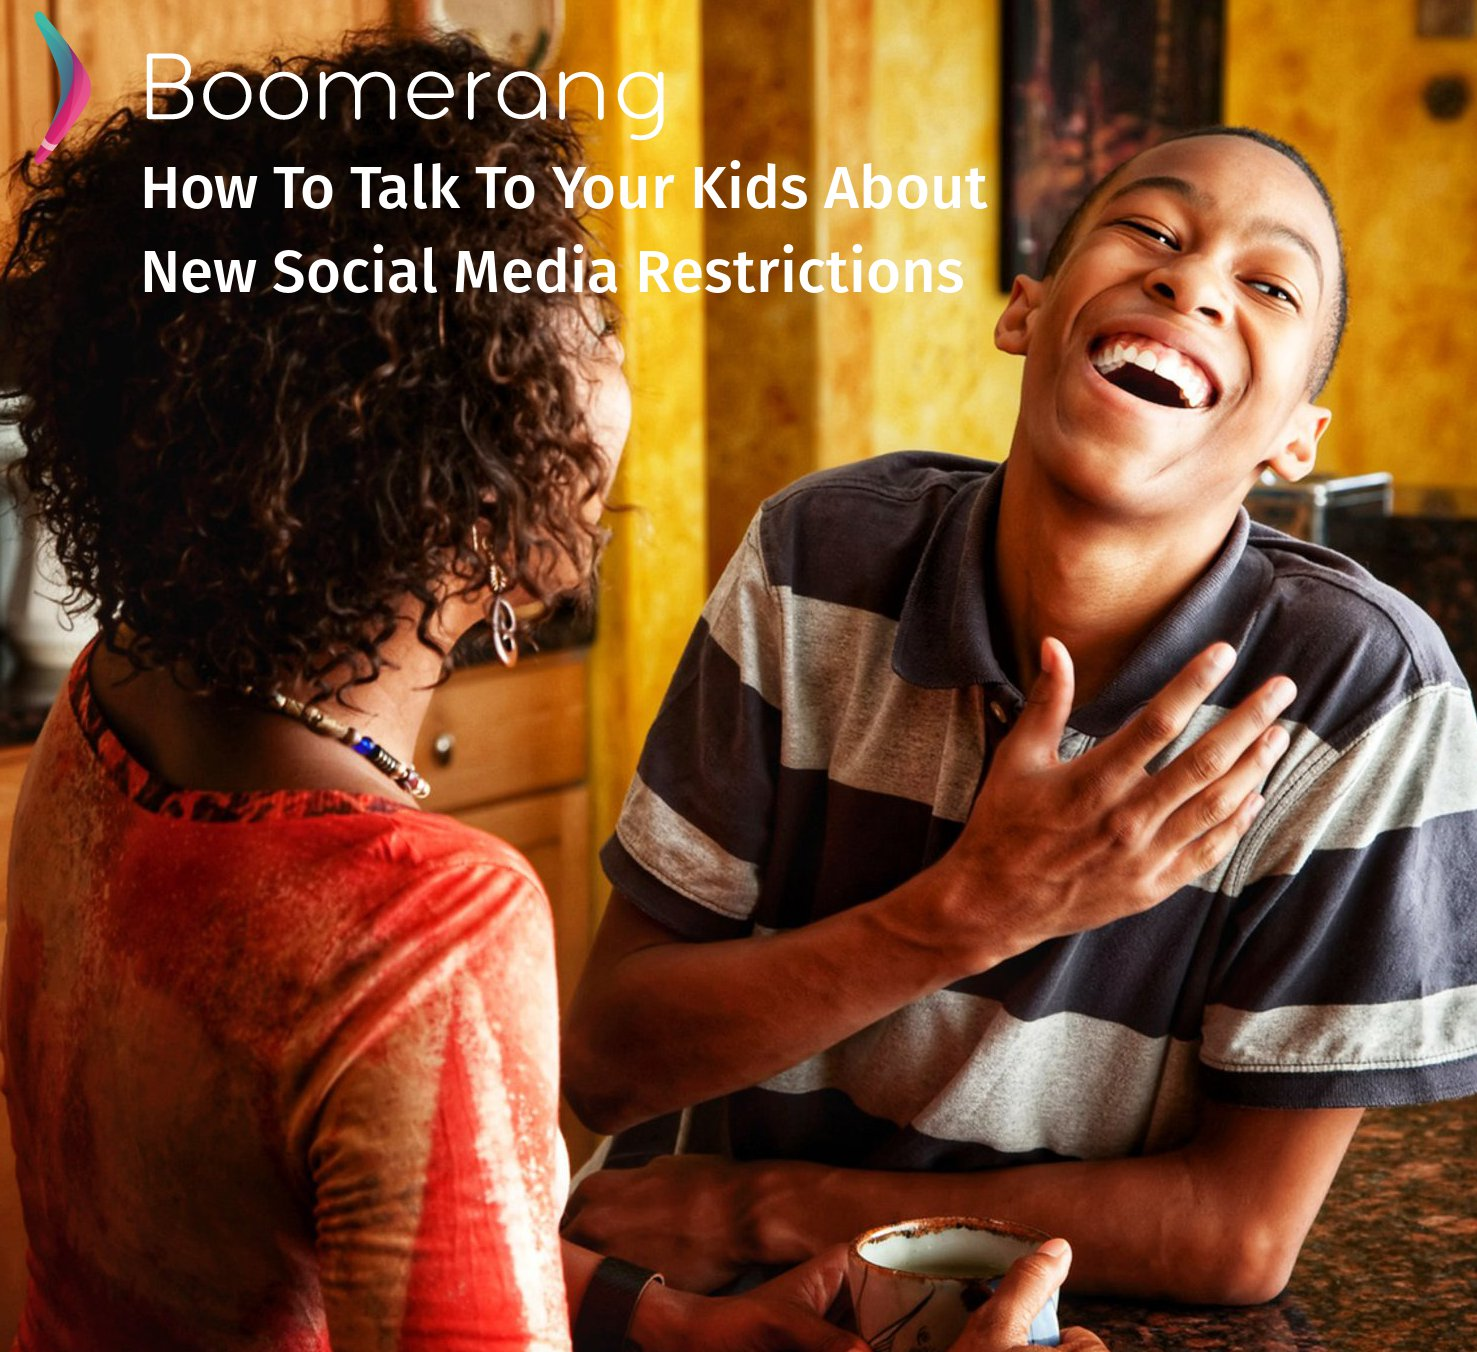 How To Talk To Your Kids About New Social Media Restrictions